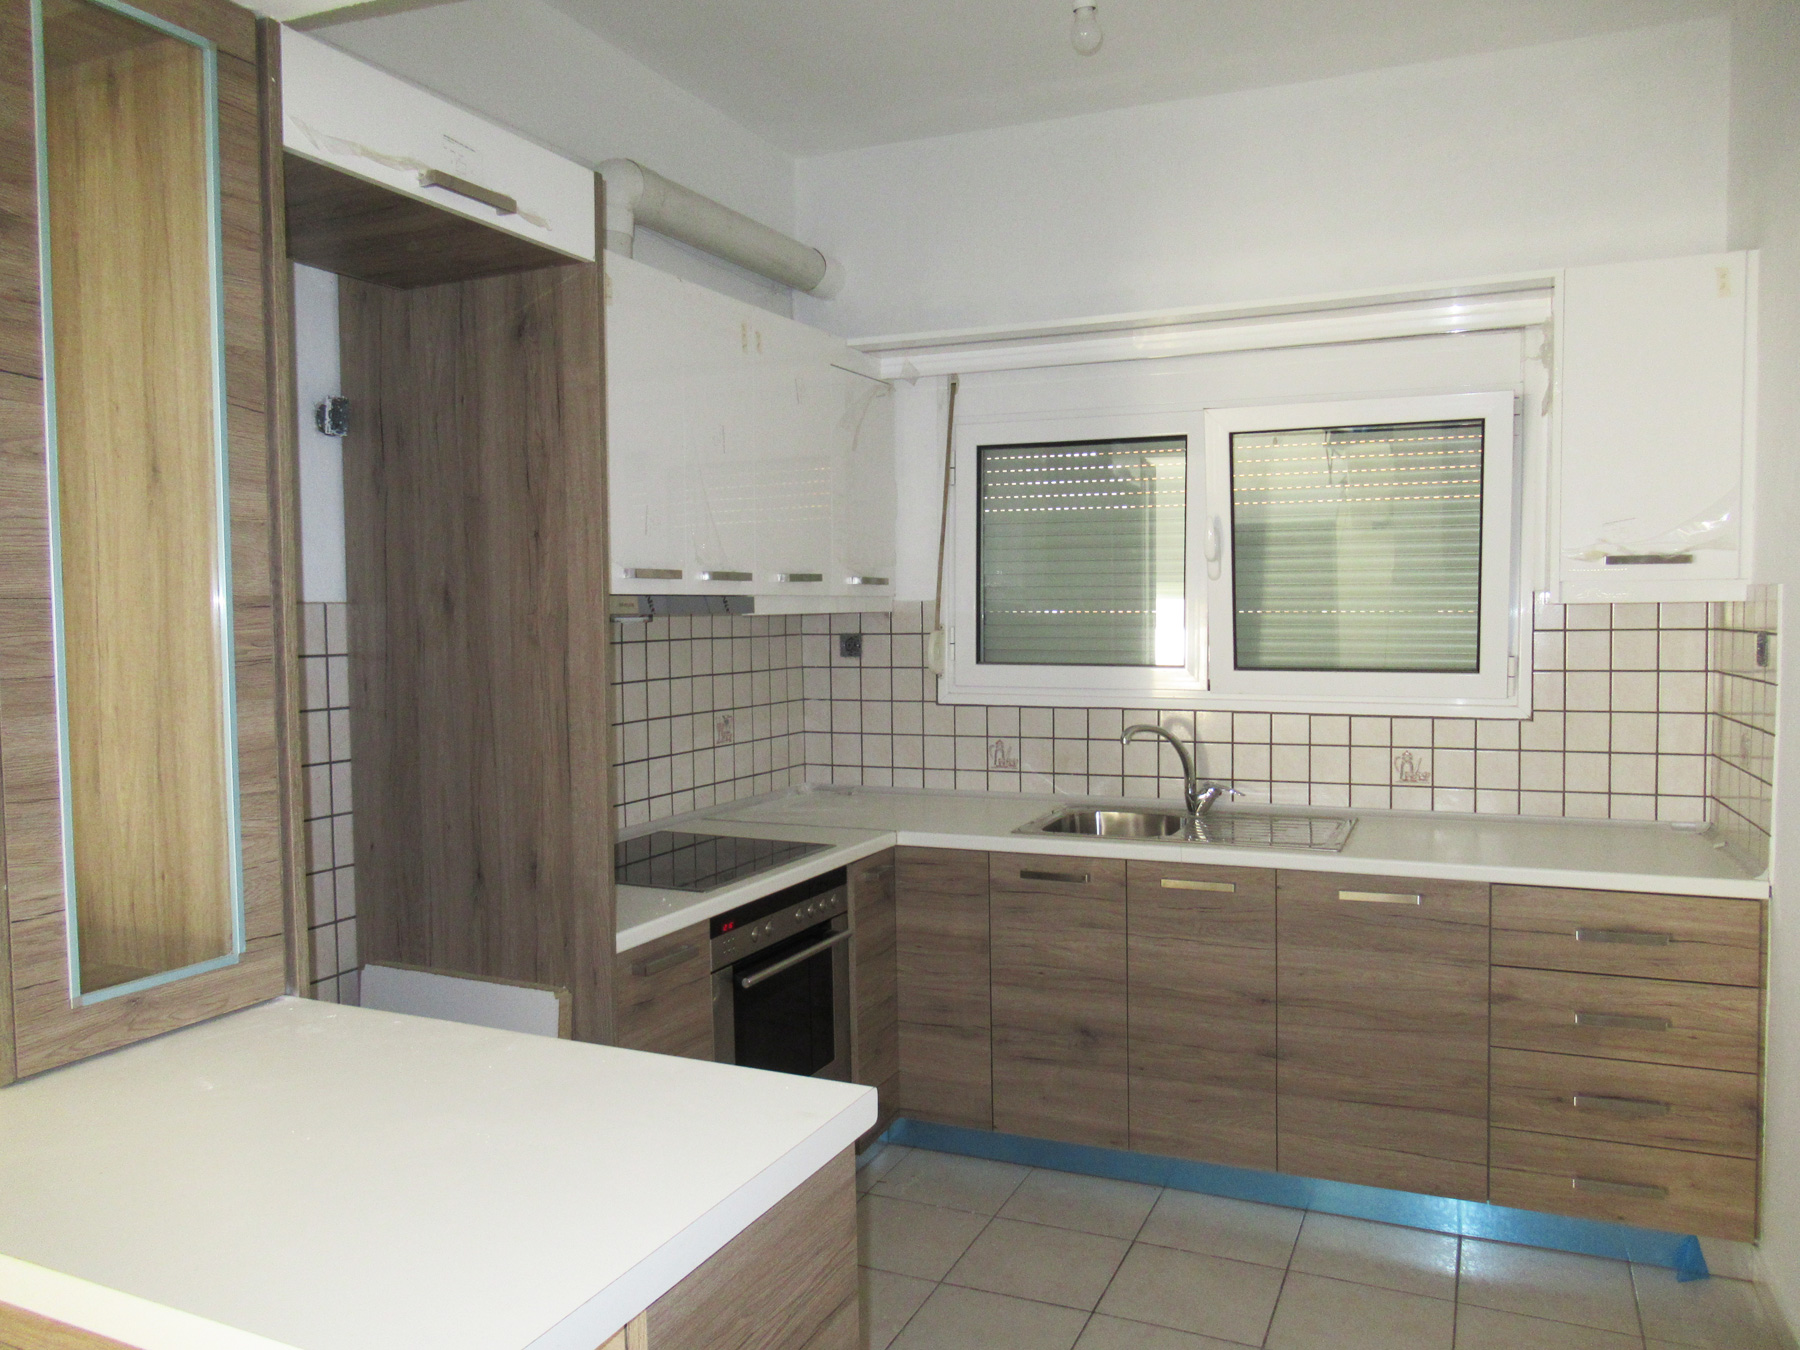 For rent renovated two bedroom apartment of 65 sq.m. on the 1st floor nearby Mosque area in Ioannina